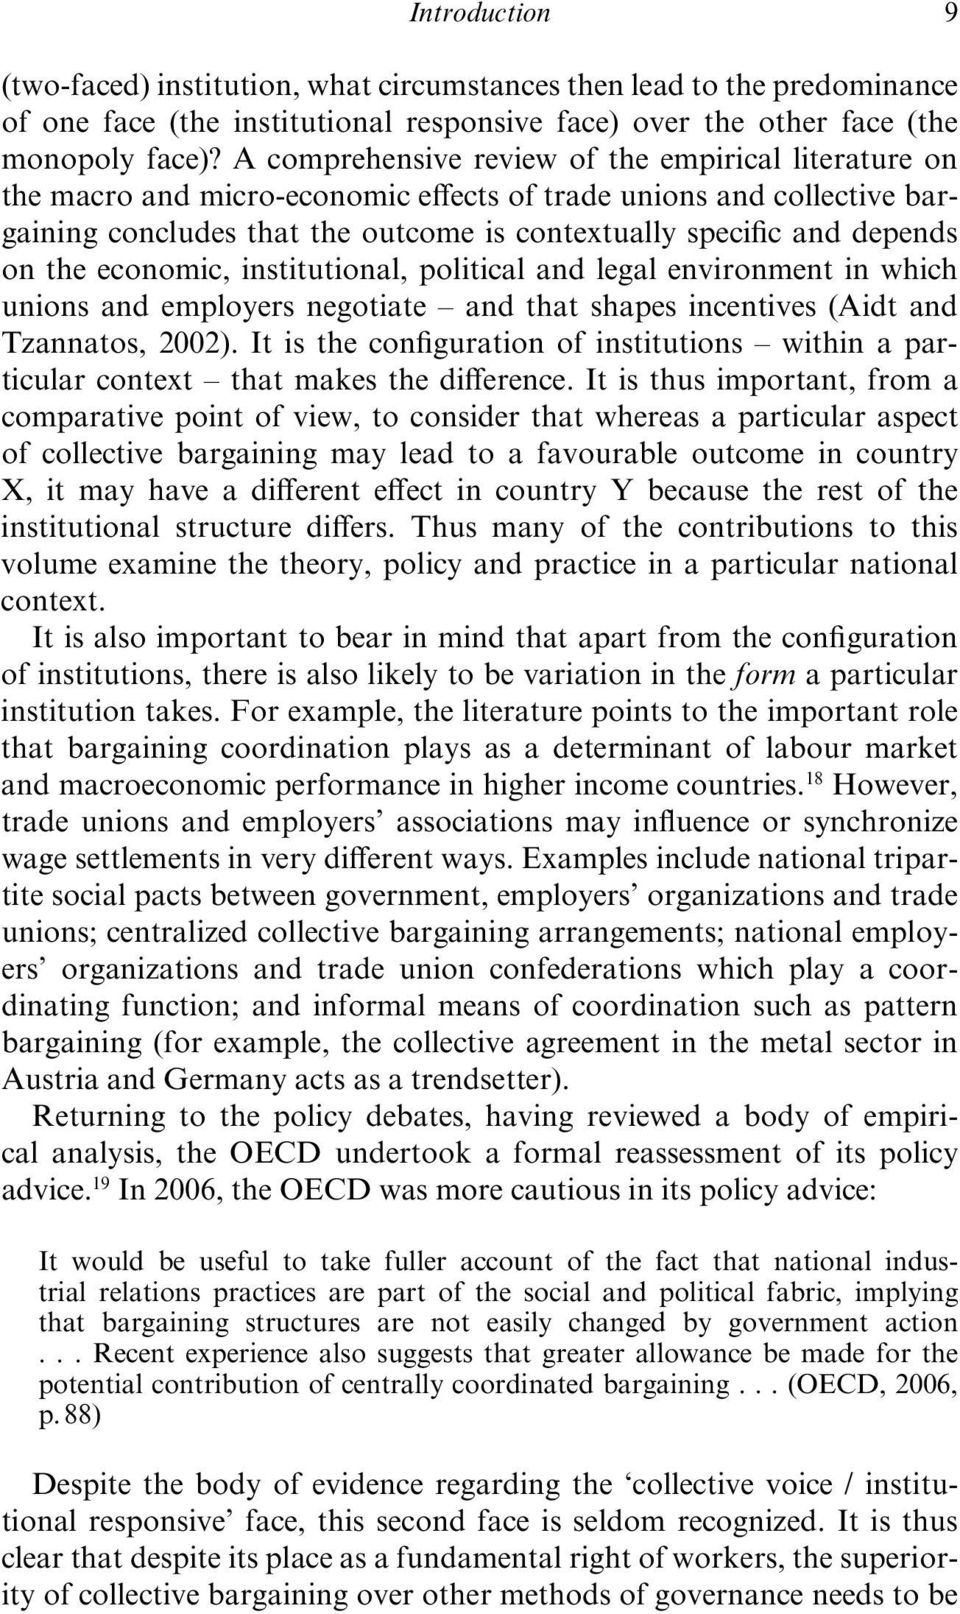 on the economic, institutional, political and legal environment in which unions and employers negotiate and that shapes incentives (Aidt and Tzannatos, 2002).